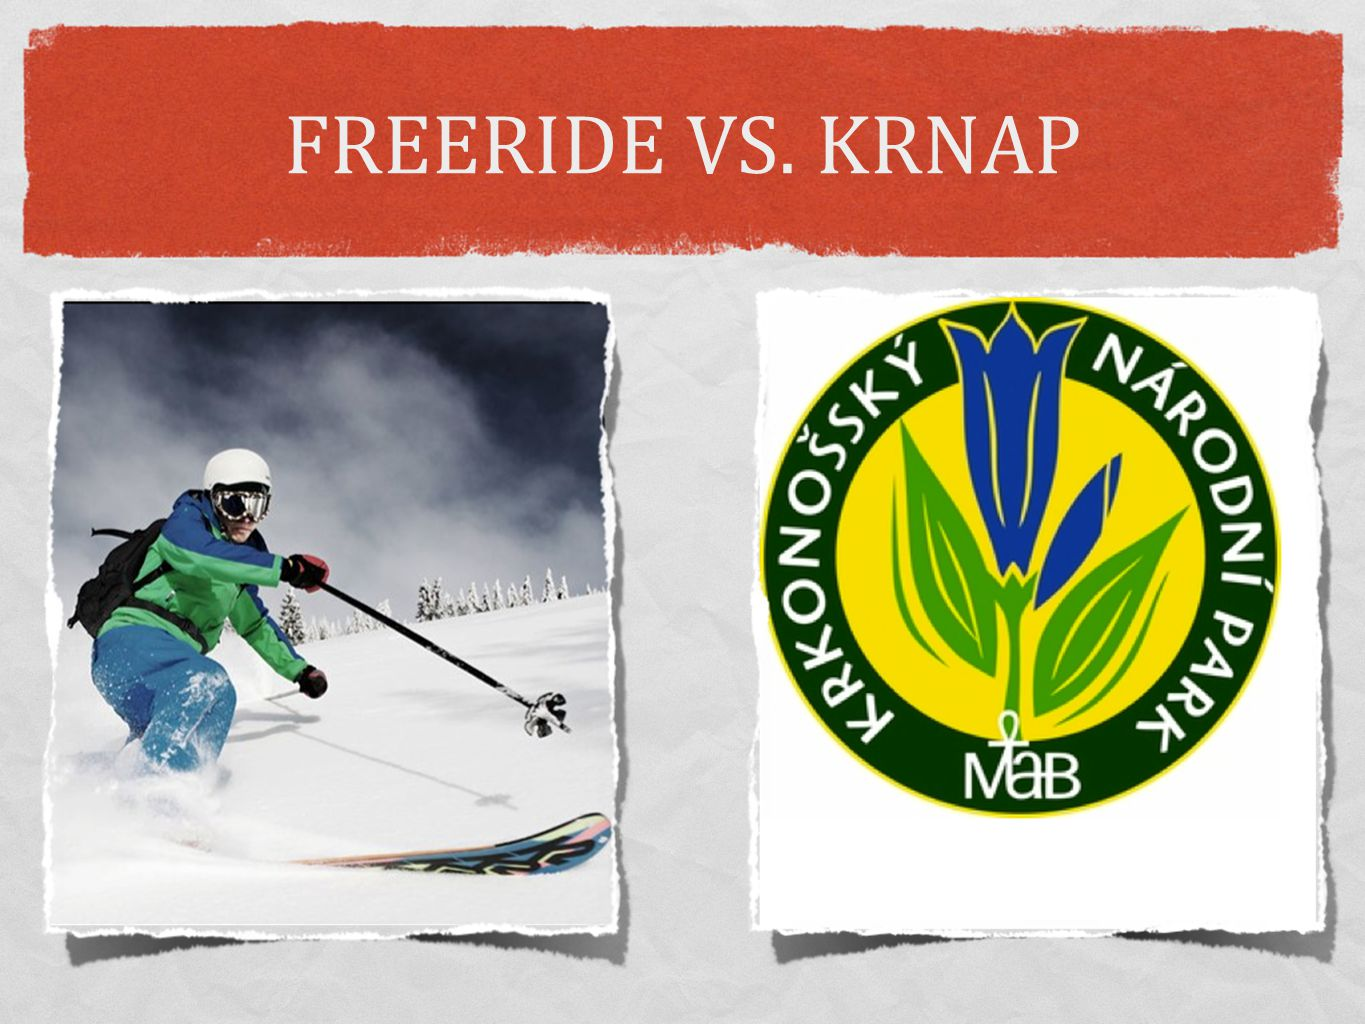 FREERIDE VS. KRNAP